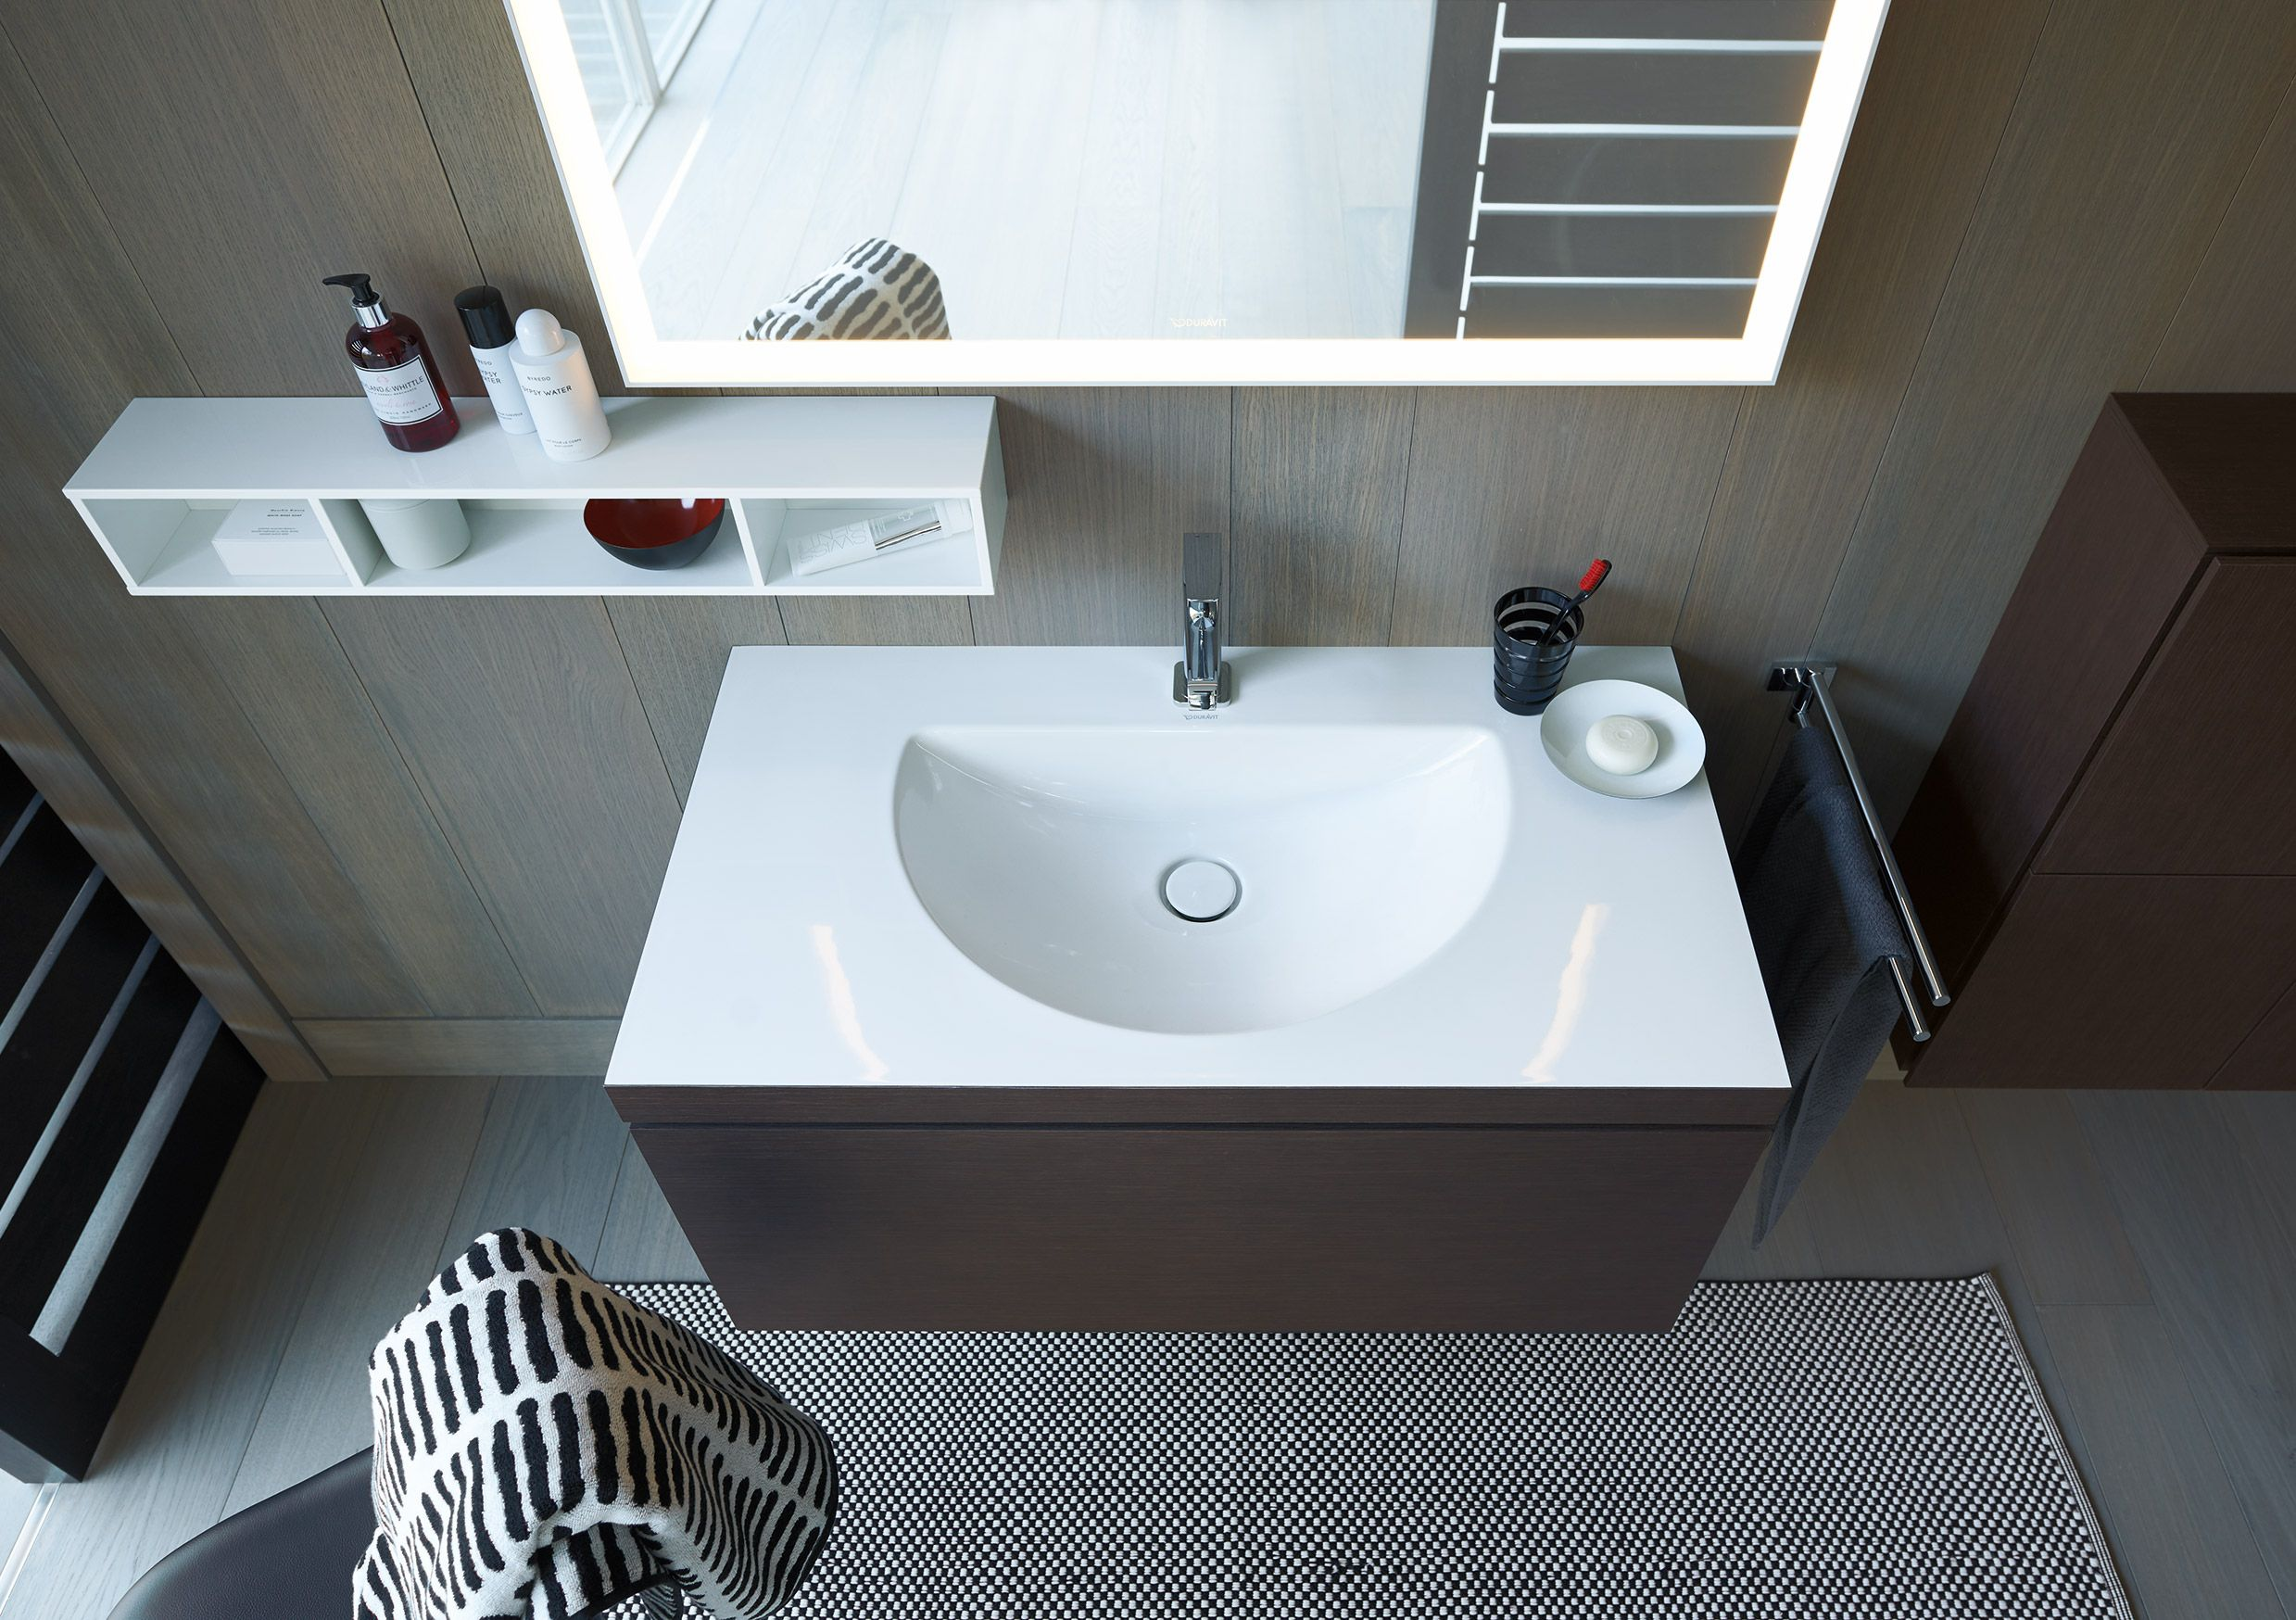 Bathroom Design Easy To Clean Basin With Streamlined Design